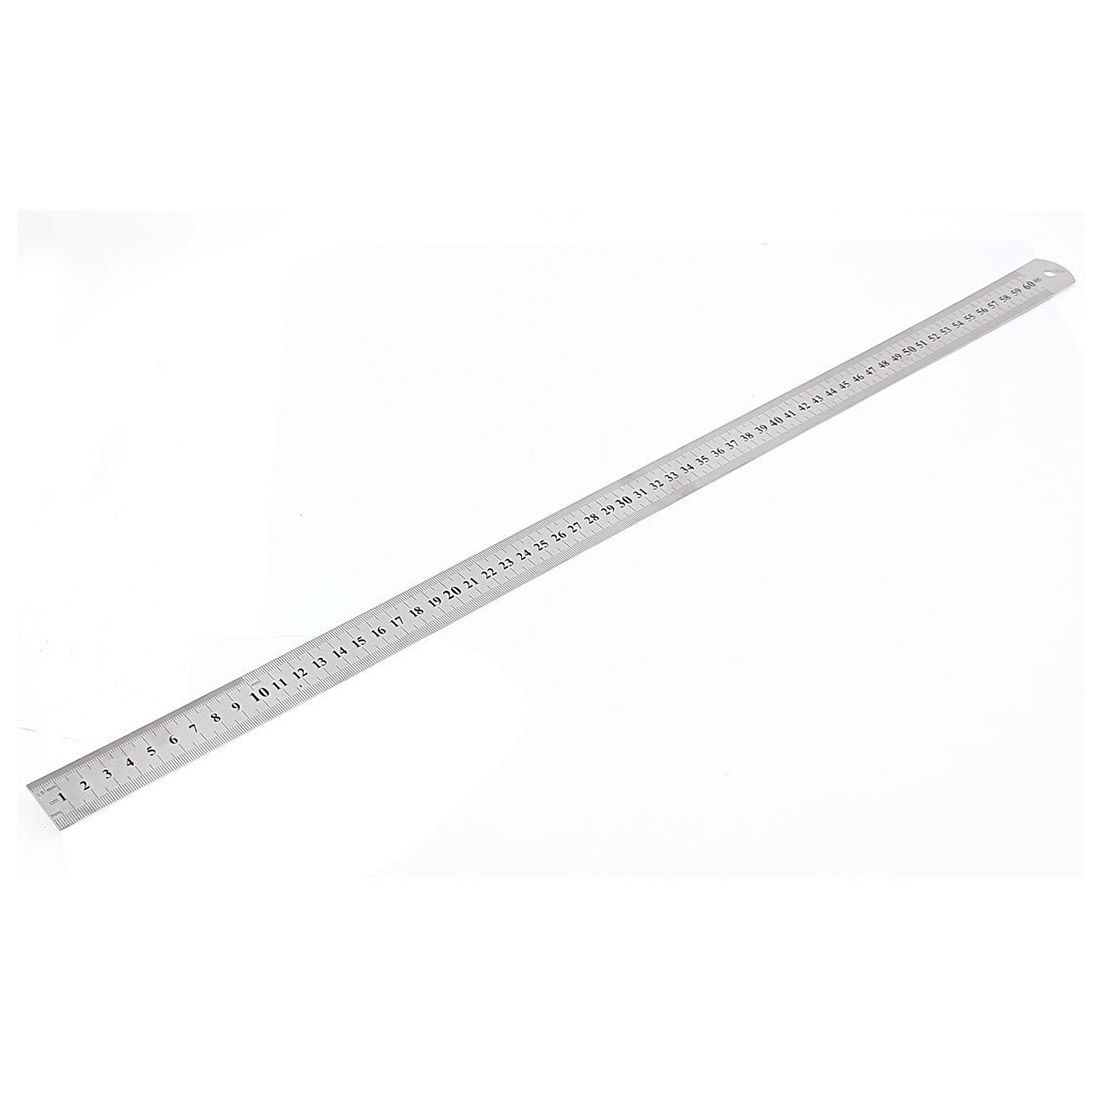 FYSS-Stainless Steel Ruler Double Side Measuring Straight Edge Ruler 60cm/24, Silver